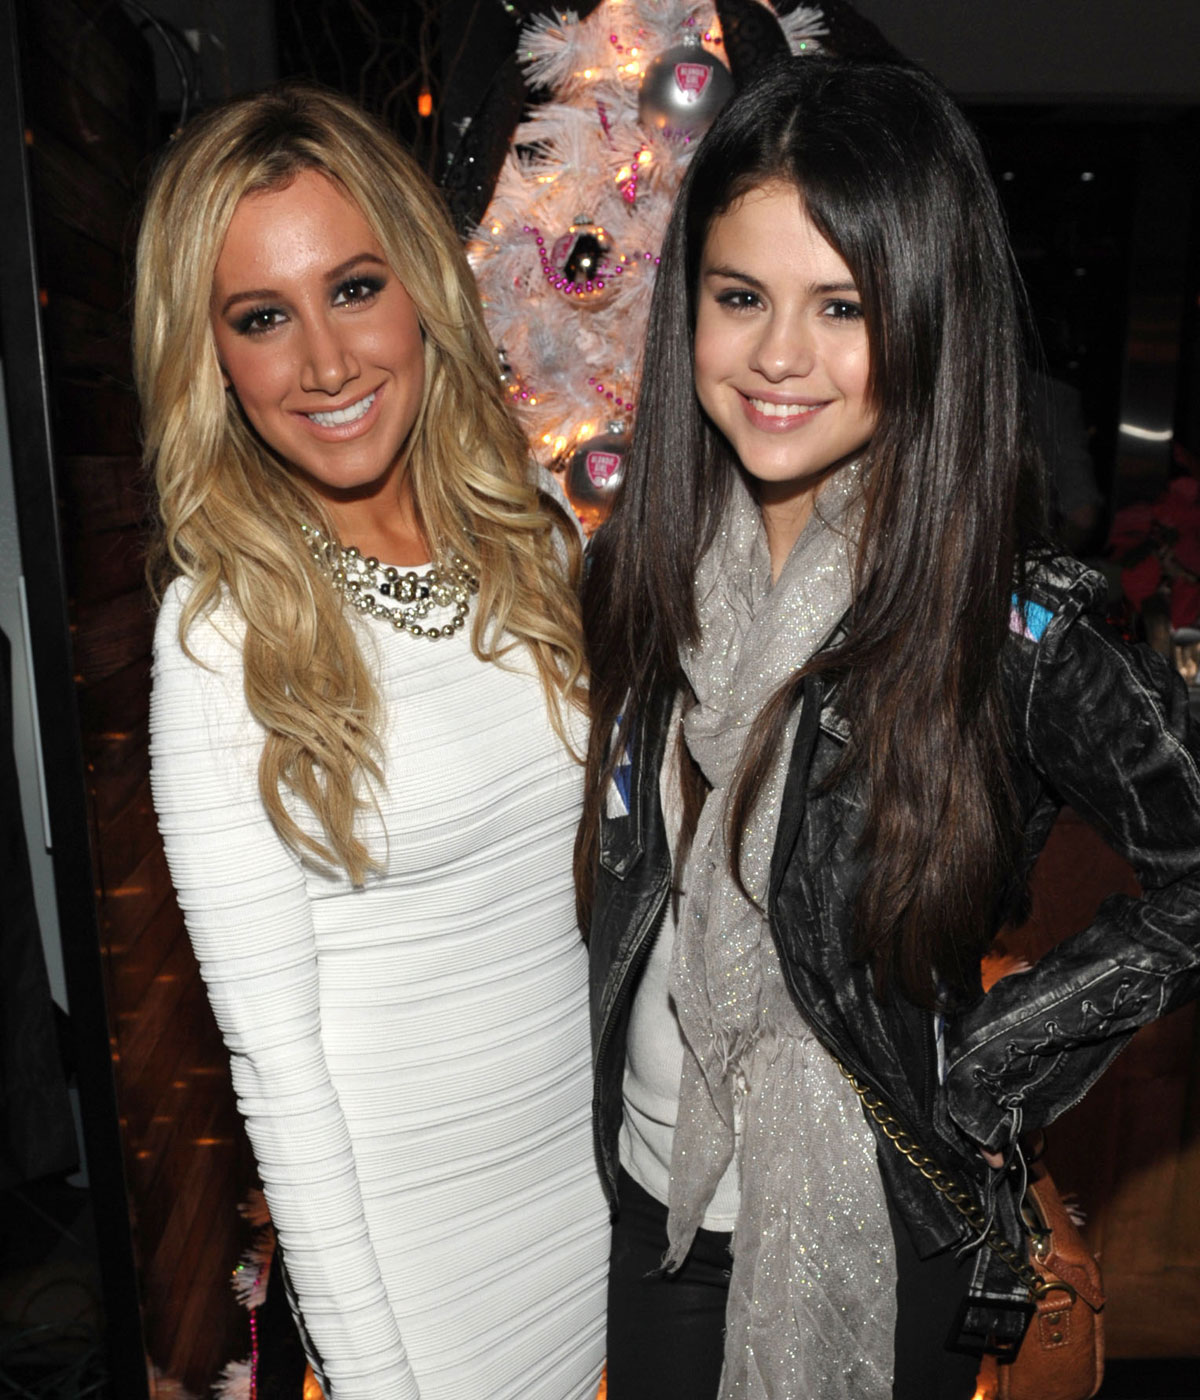 Ashley Tisdale And Selena Gomez At Blondie Girl -4375